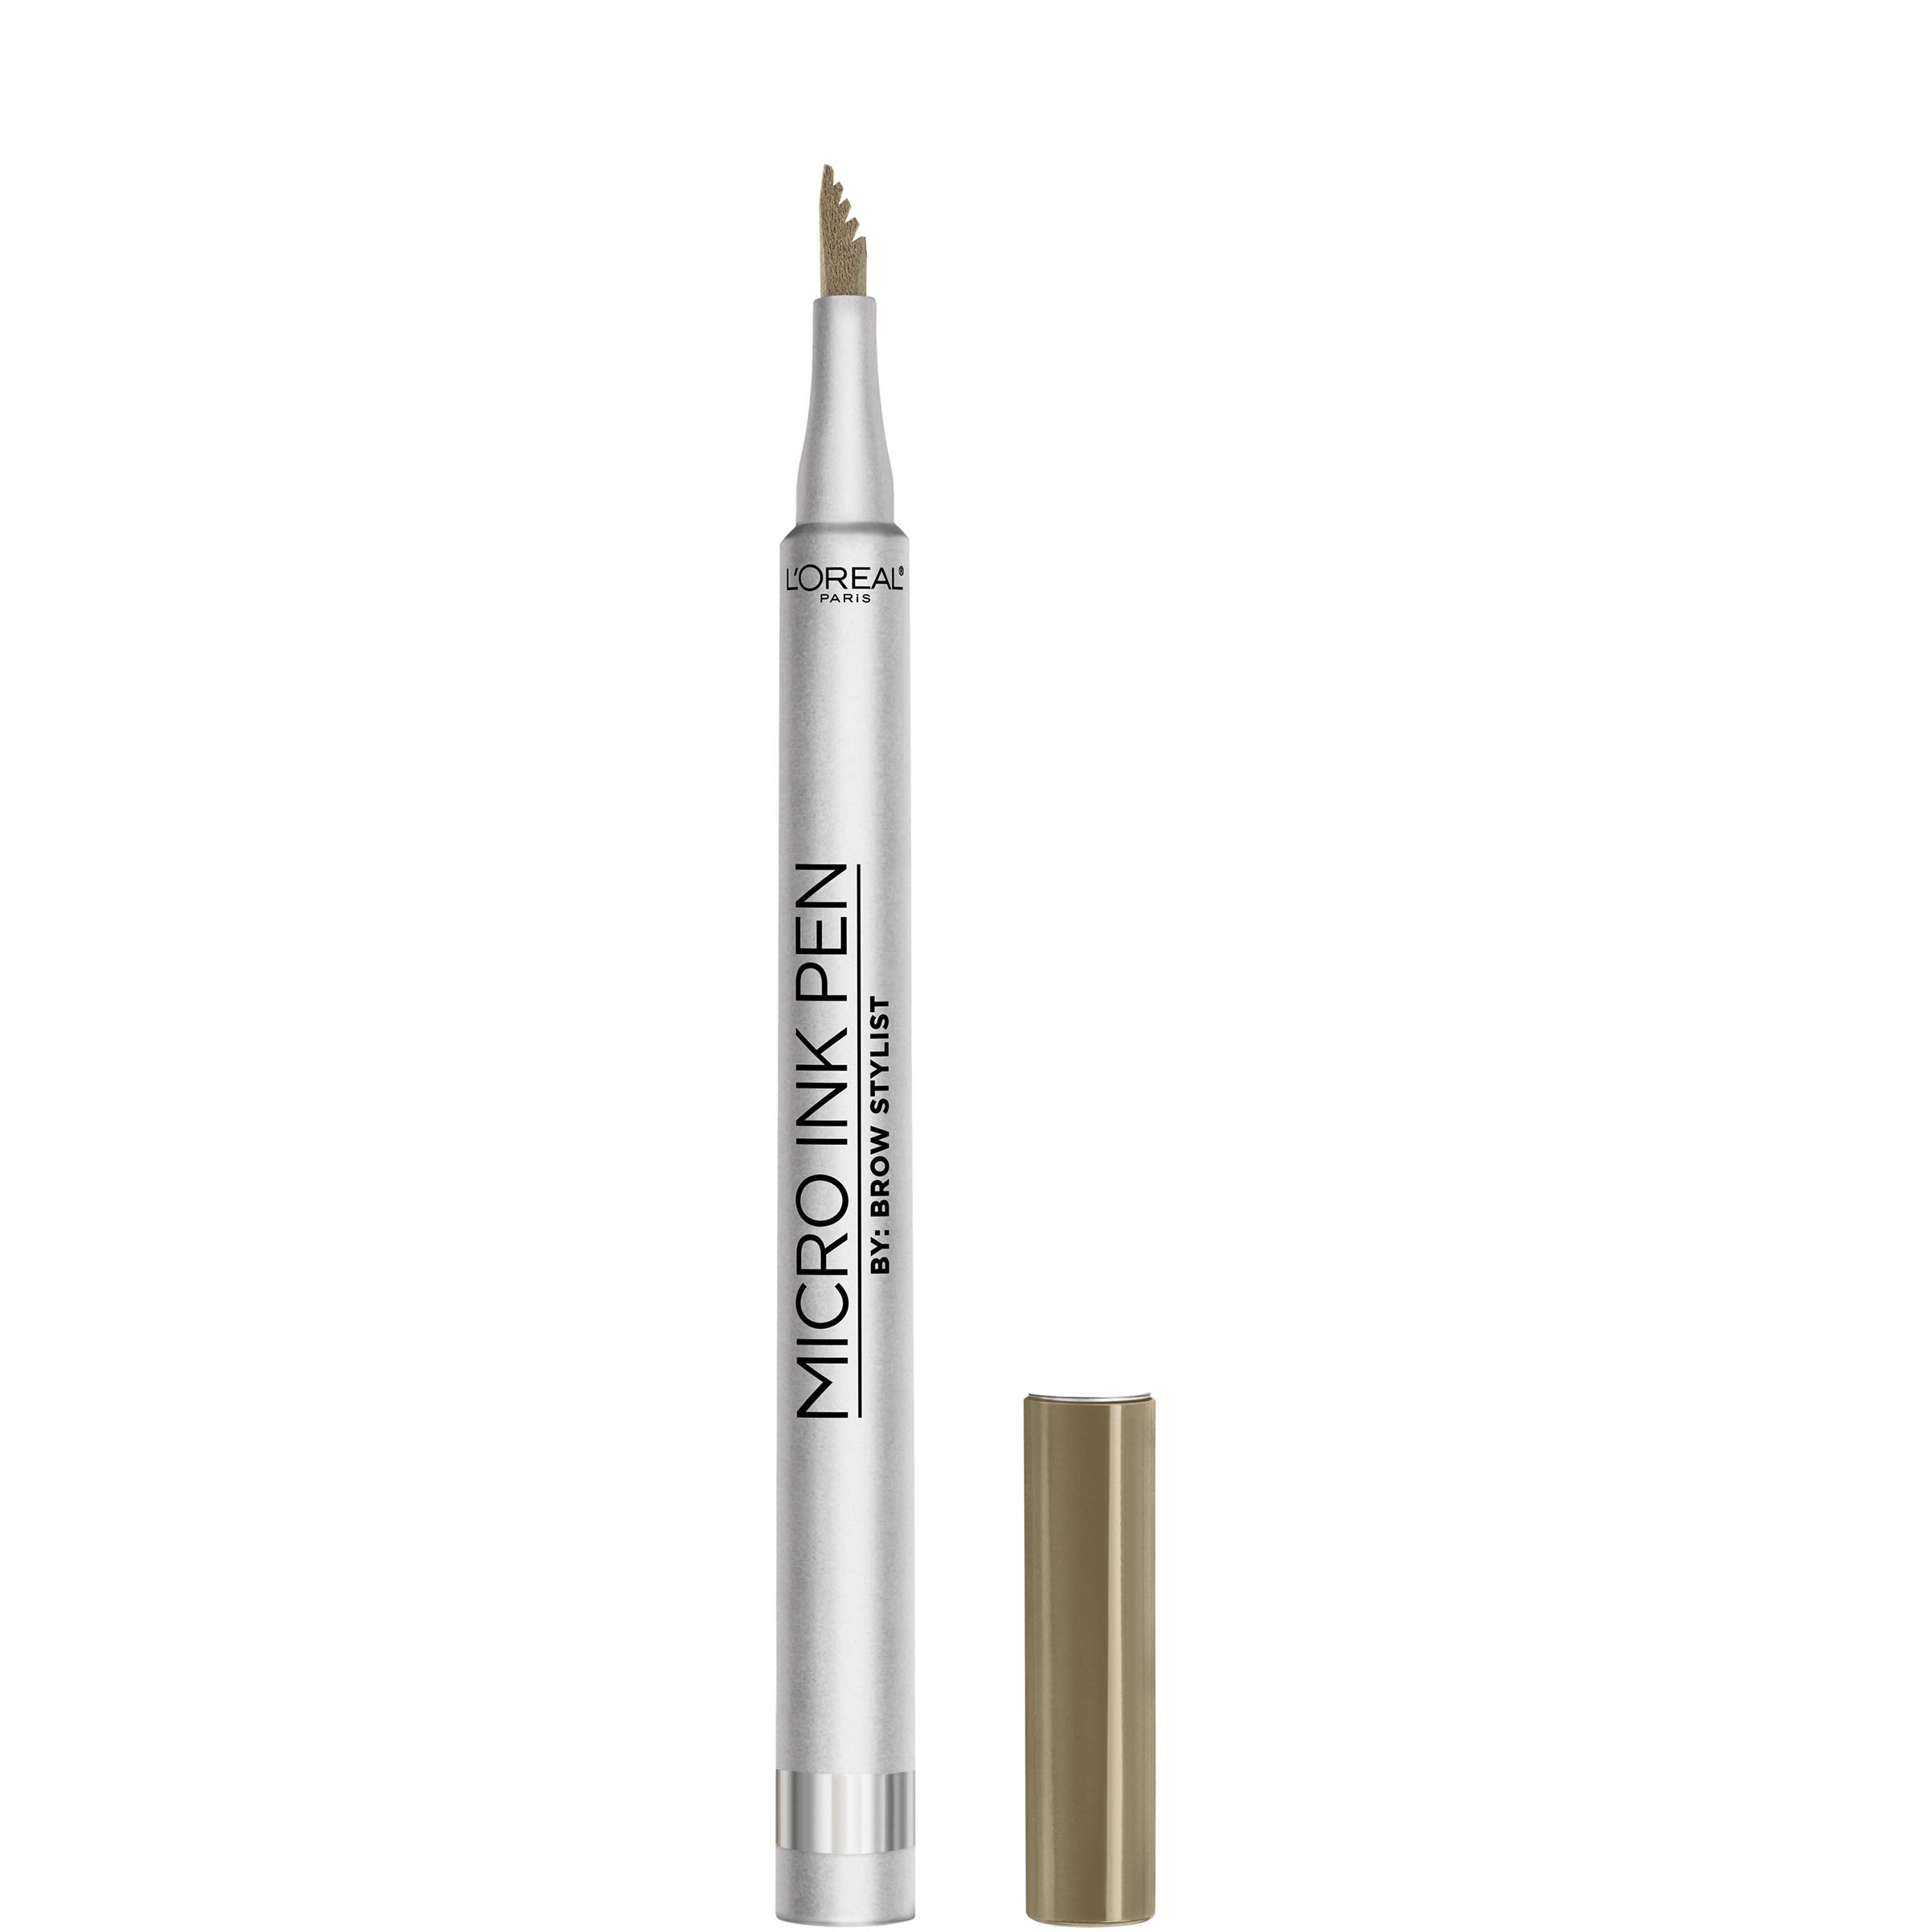 L'Oreal Paris Micro Ink Pen by Brow Stylist, Longwear Brow Tint, Hair-Like Effect, Up to 48HR Wear, Precision Comb Tip, Blonde, 0.033 fl. oz.